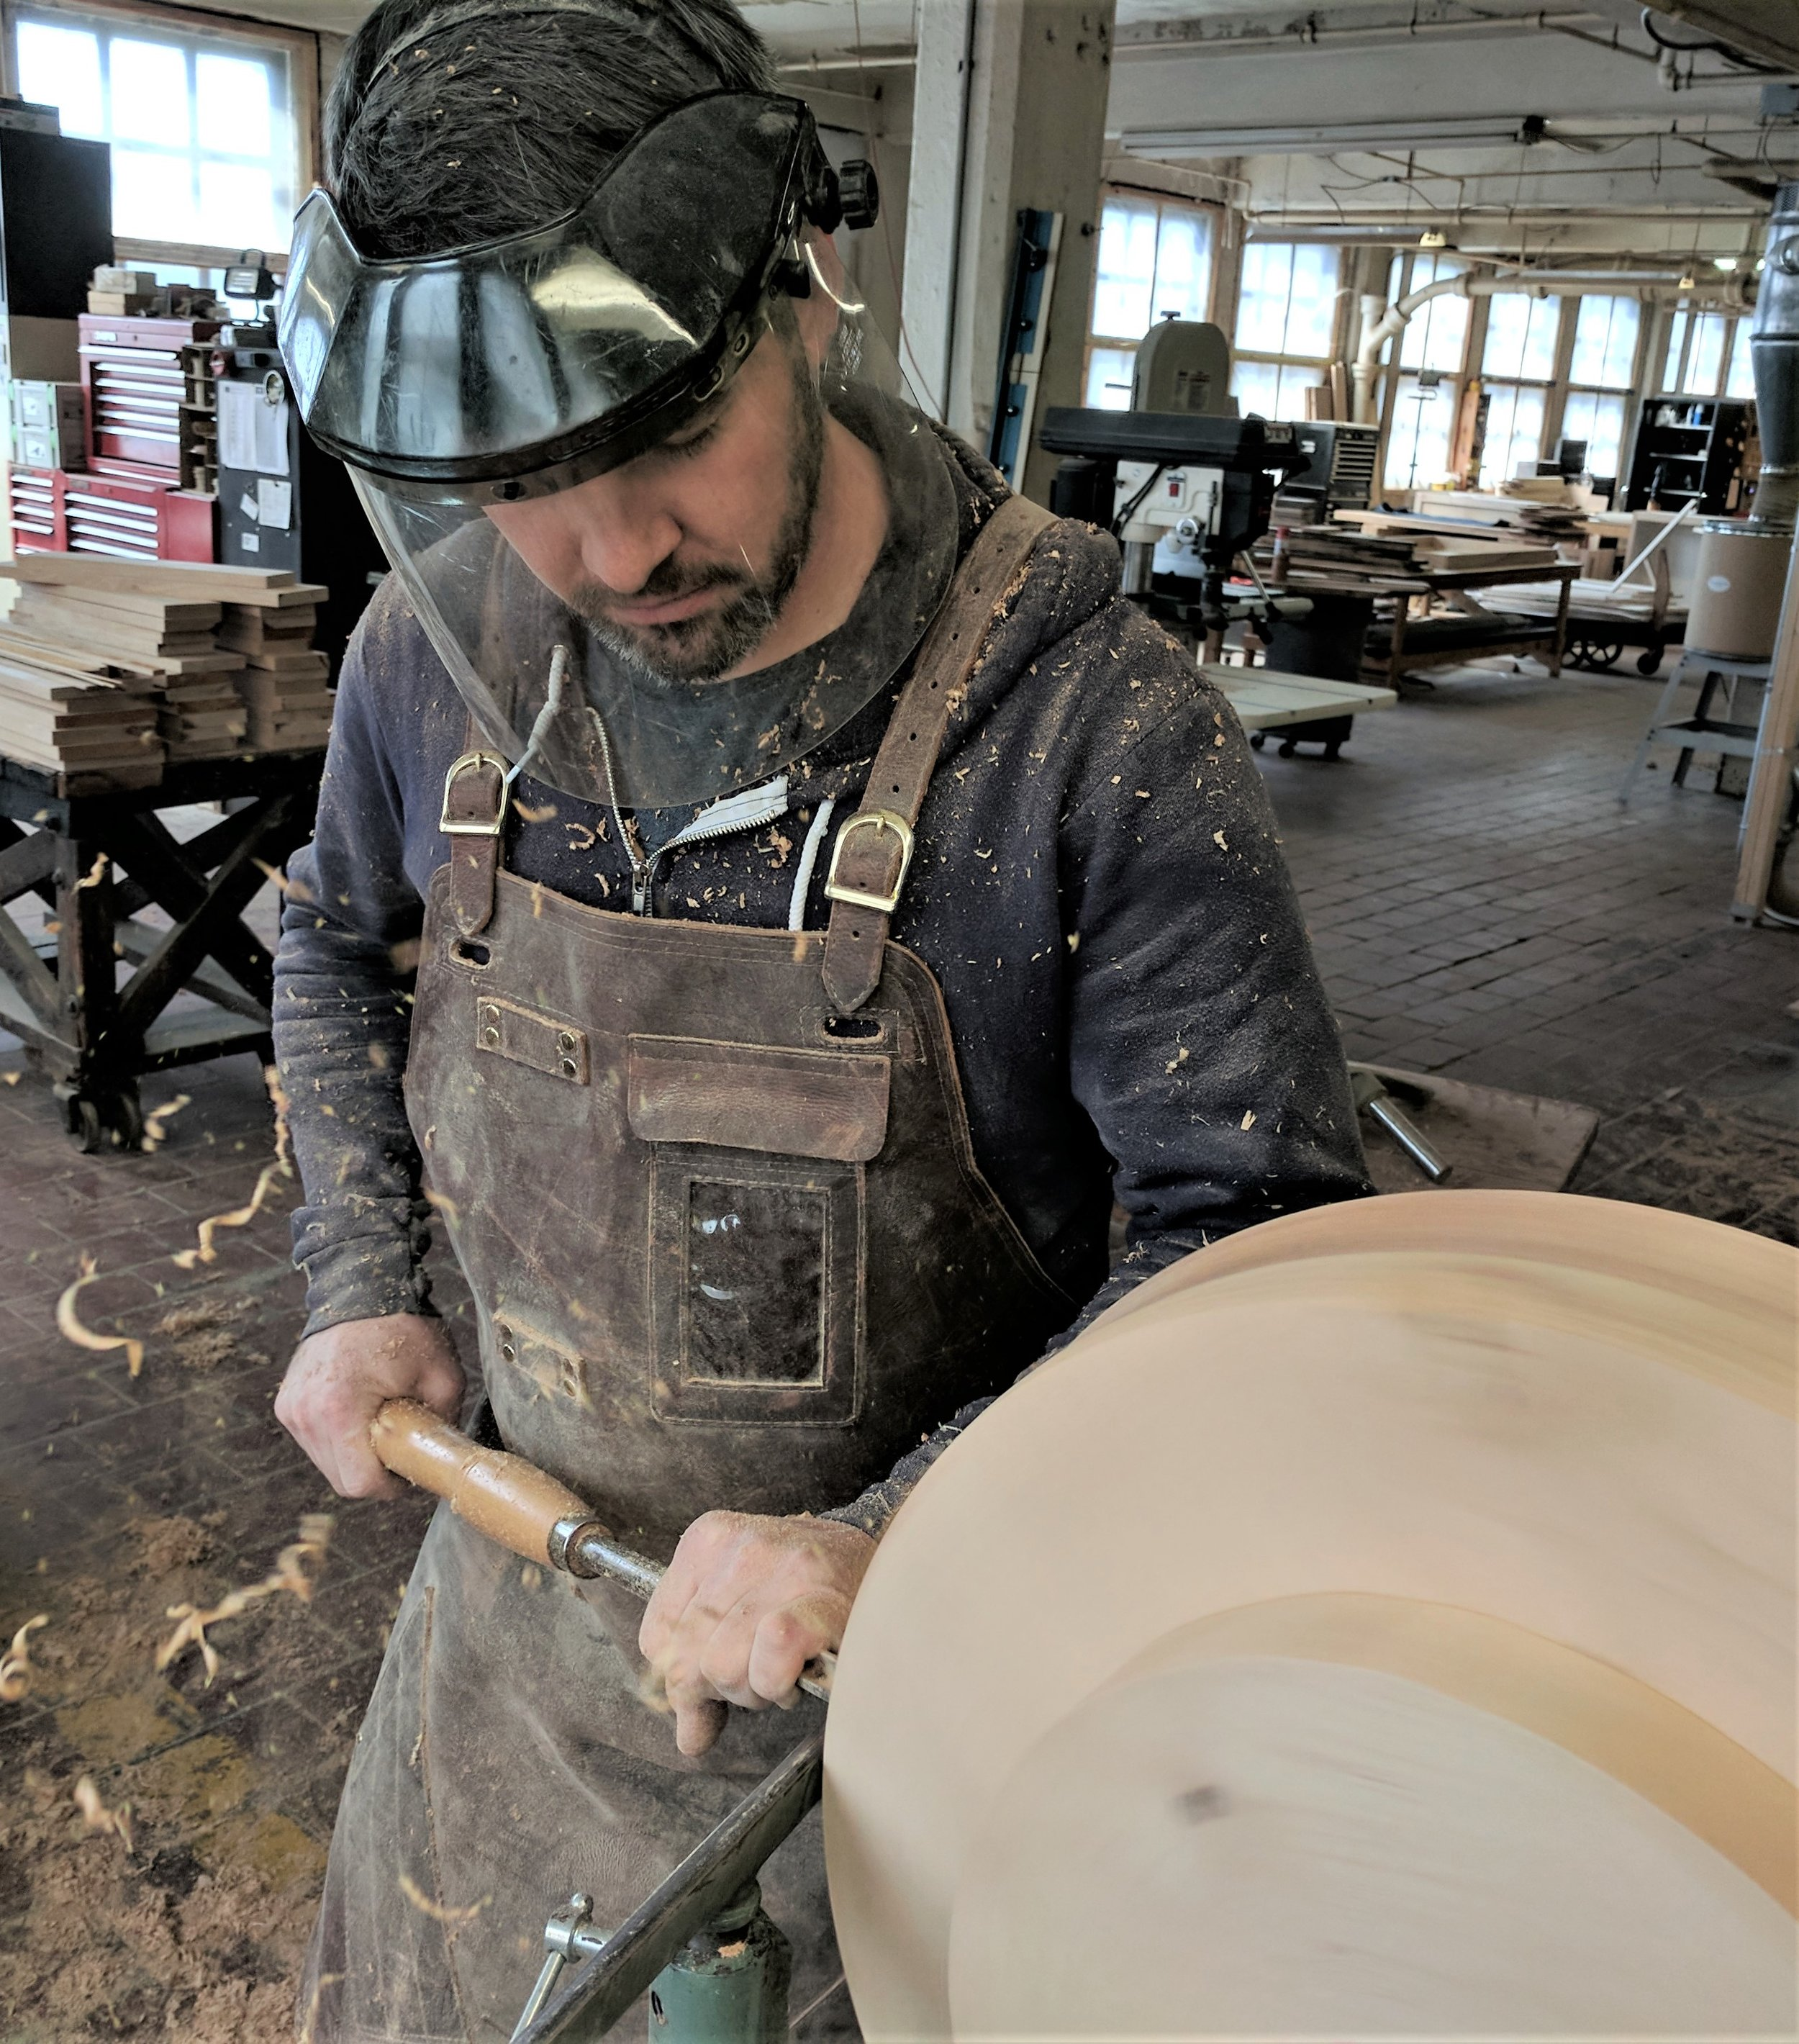 Robert hand-turning a pedestal table base for Borrow Curated: Rentals, Retail & Venue